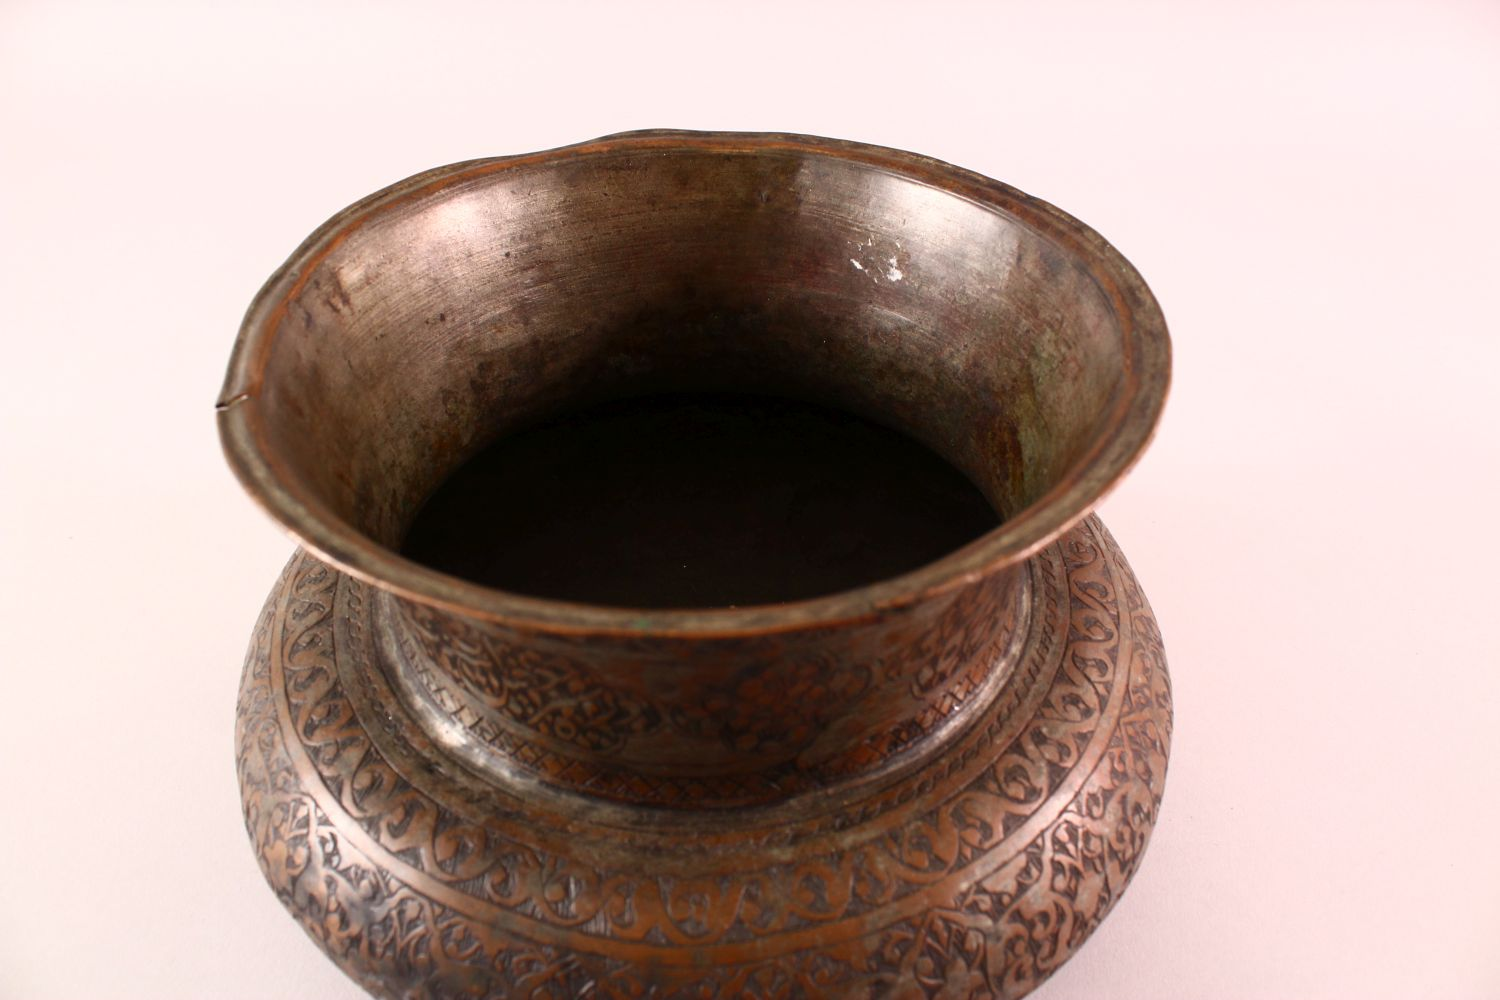 A 17TH CENTURY PERSIAN CALLIGRAPHIC BOWL -SIGNED - the body with carved floral motif decoration, the - Image 6 of 7